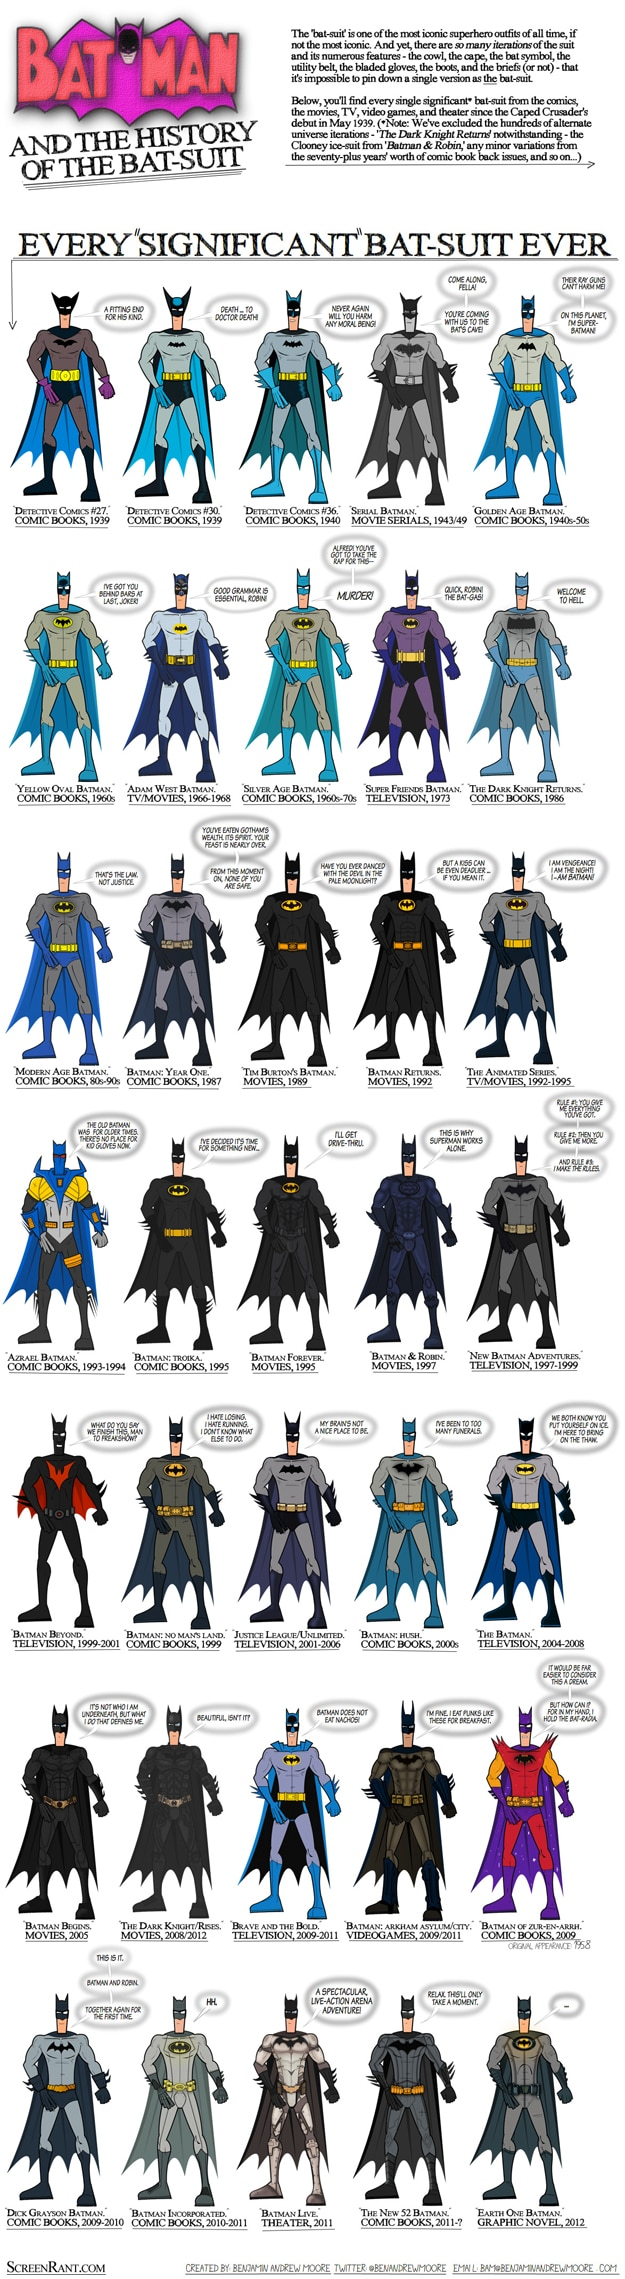 Every Bat Suit Ever Made